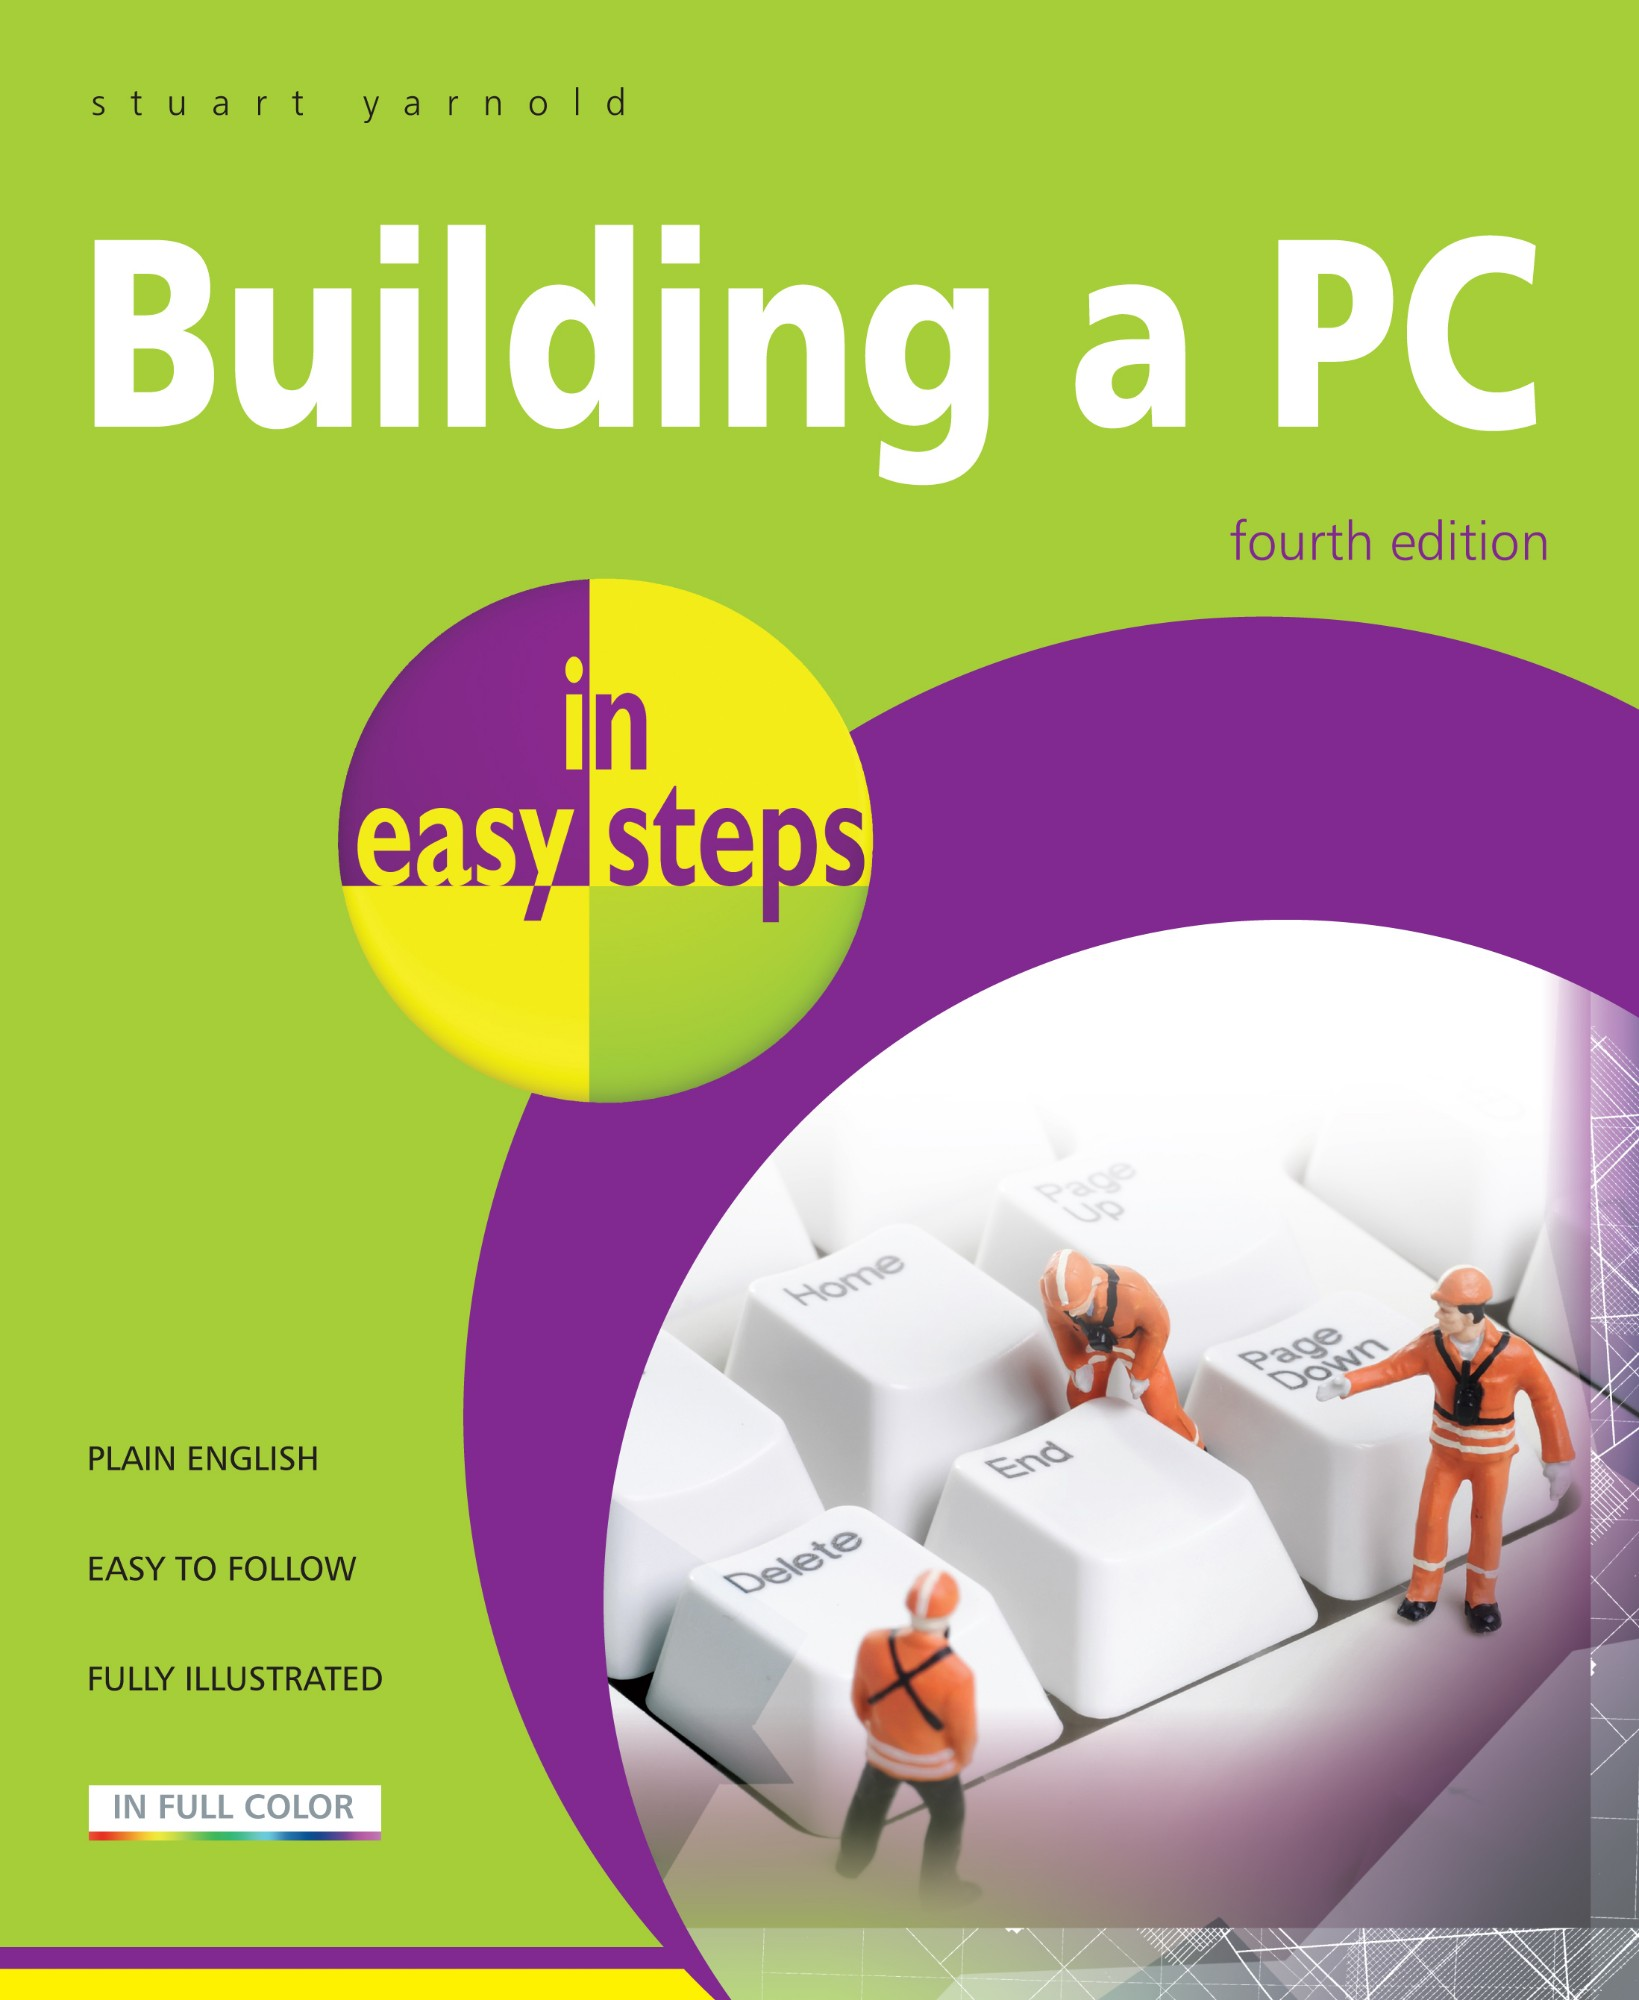 IN EASY STEPS Maplin Manual Building a PC In Easy Steps 4th Editon Fully Illustrated